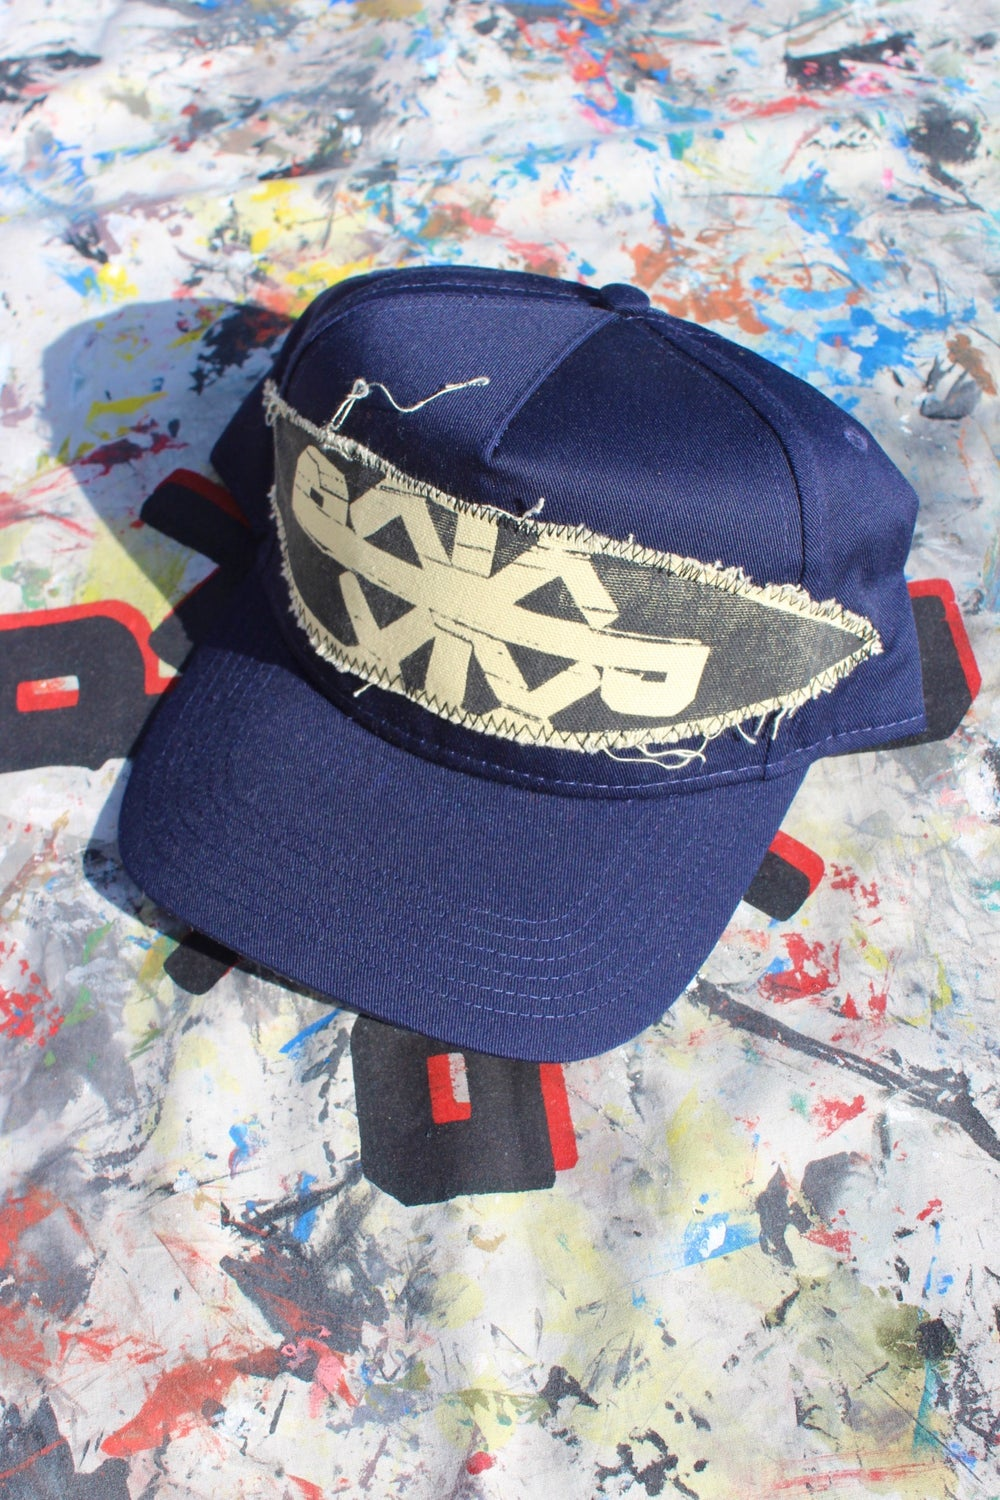 see that baseball cap in navy blue